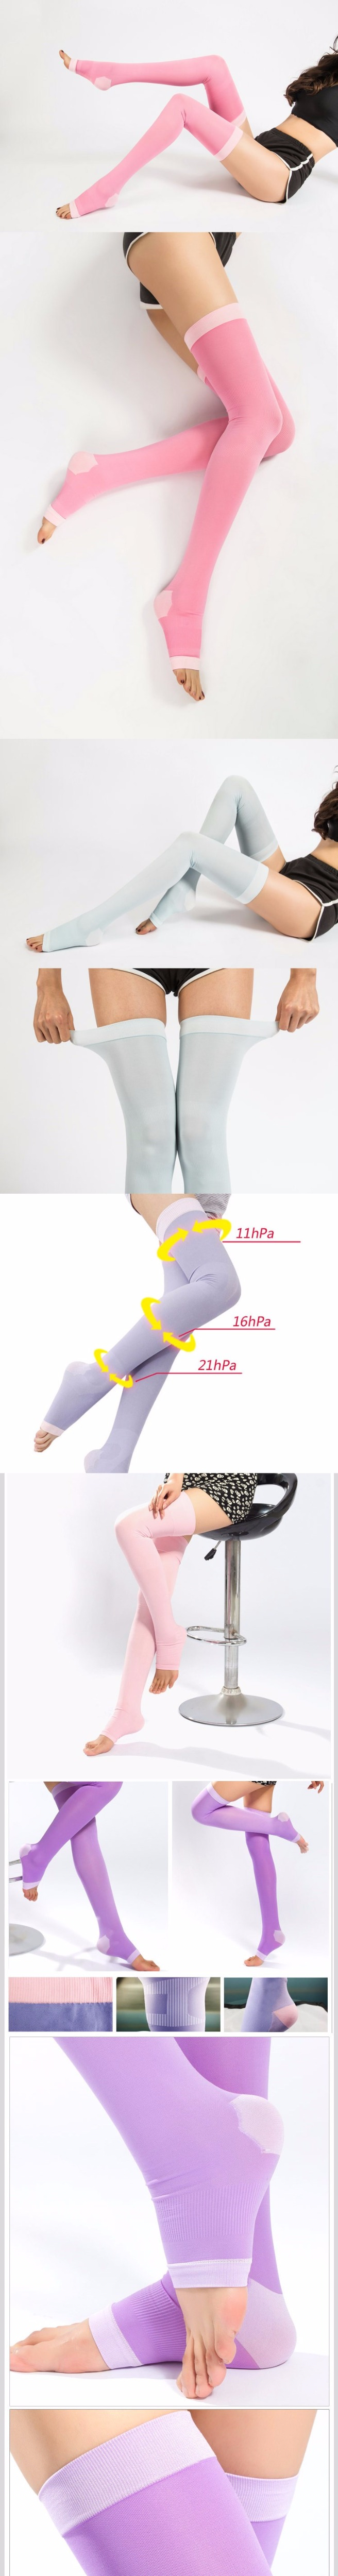 a203123fef 2019 Elastic Compression Stockings For Men Women Sleep Slim Leg ...